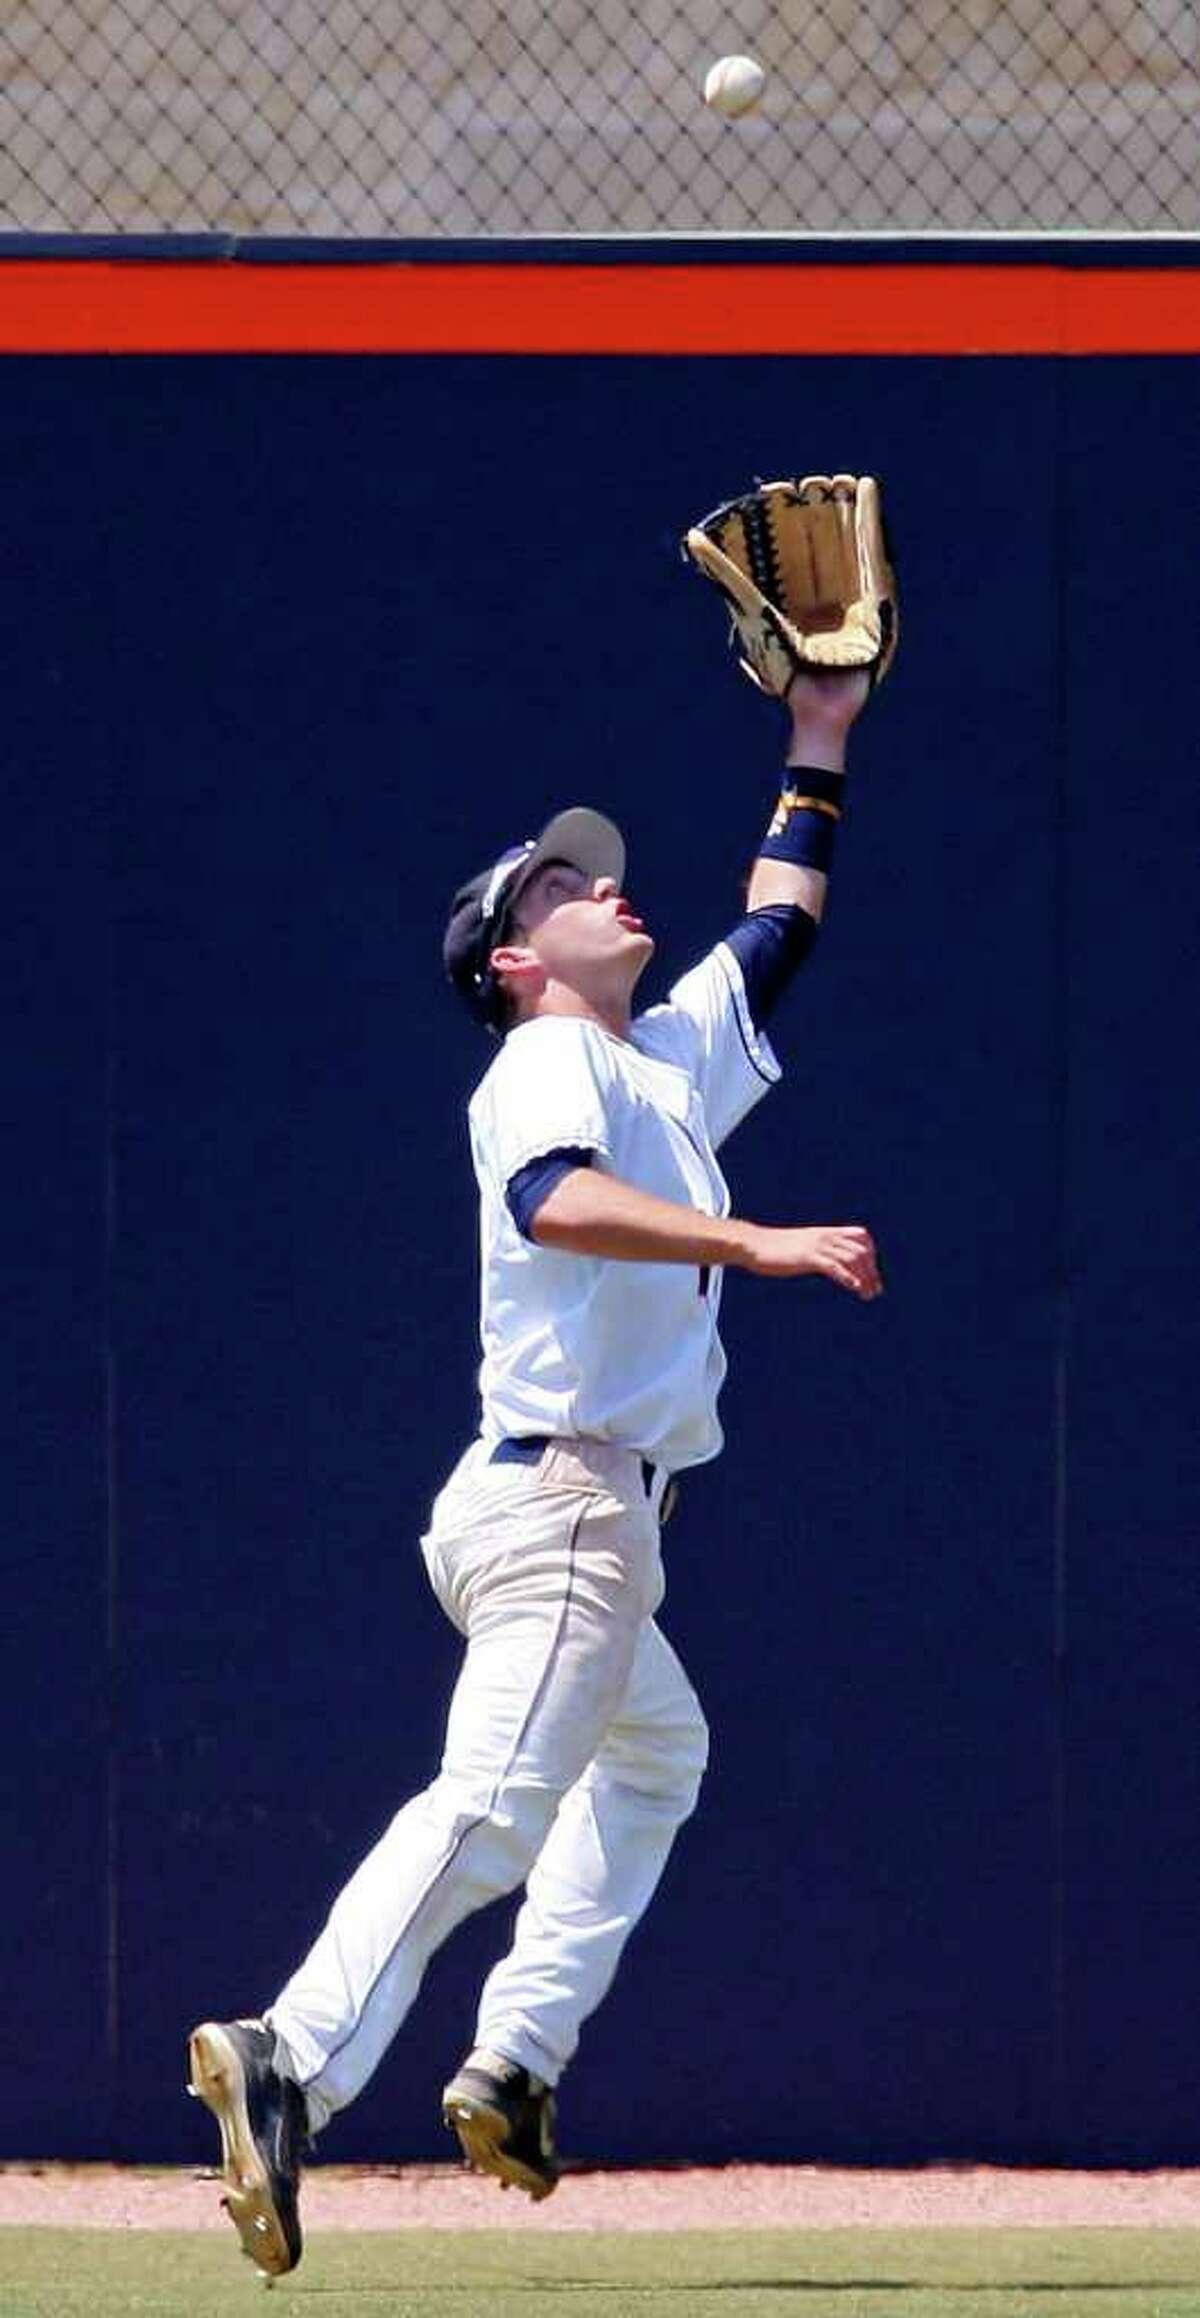 FOR SPORTS - UTSA's Riley Good chases down a fly ball hit by Texas State's Cody Gambill during the third inning Saturday May 7, 2011 at Roadrunner Field. Texas State won 9-7. (PHOTO BY EDWARD A. ORNELAS/eaornelas@express-news.net)